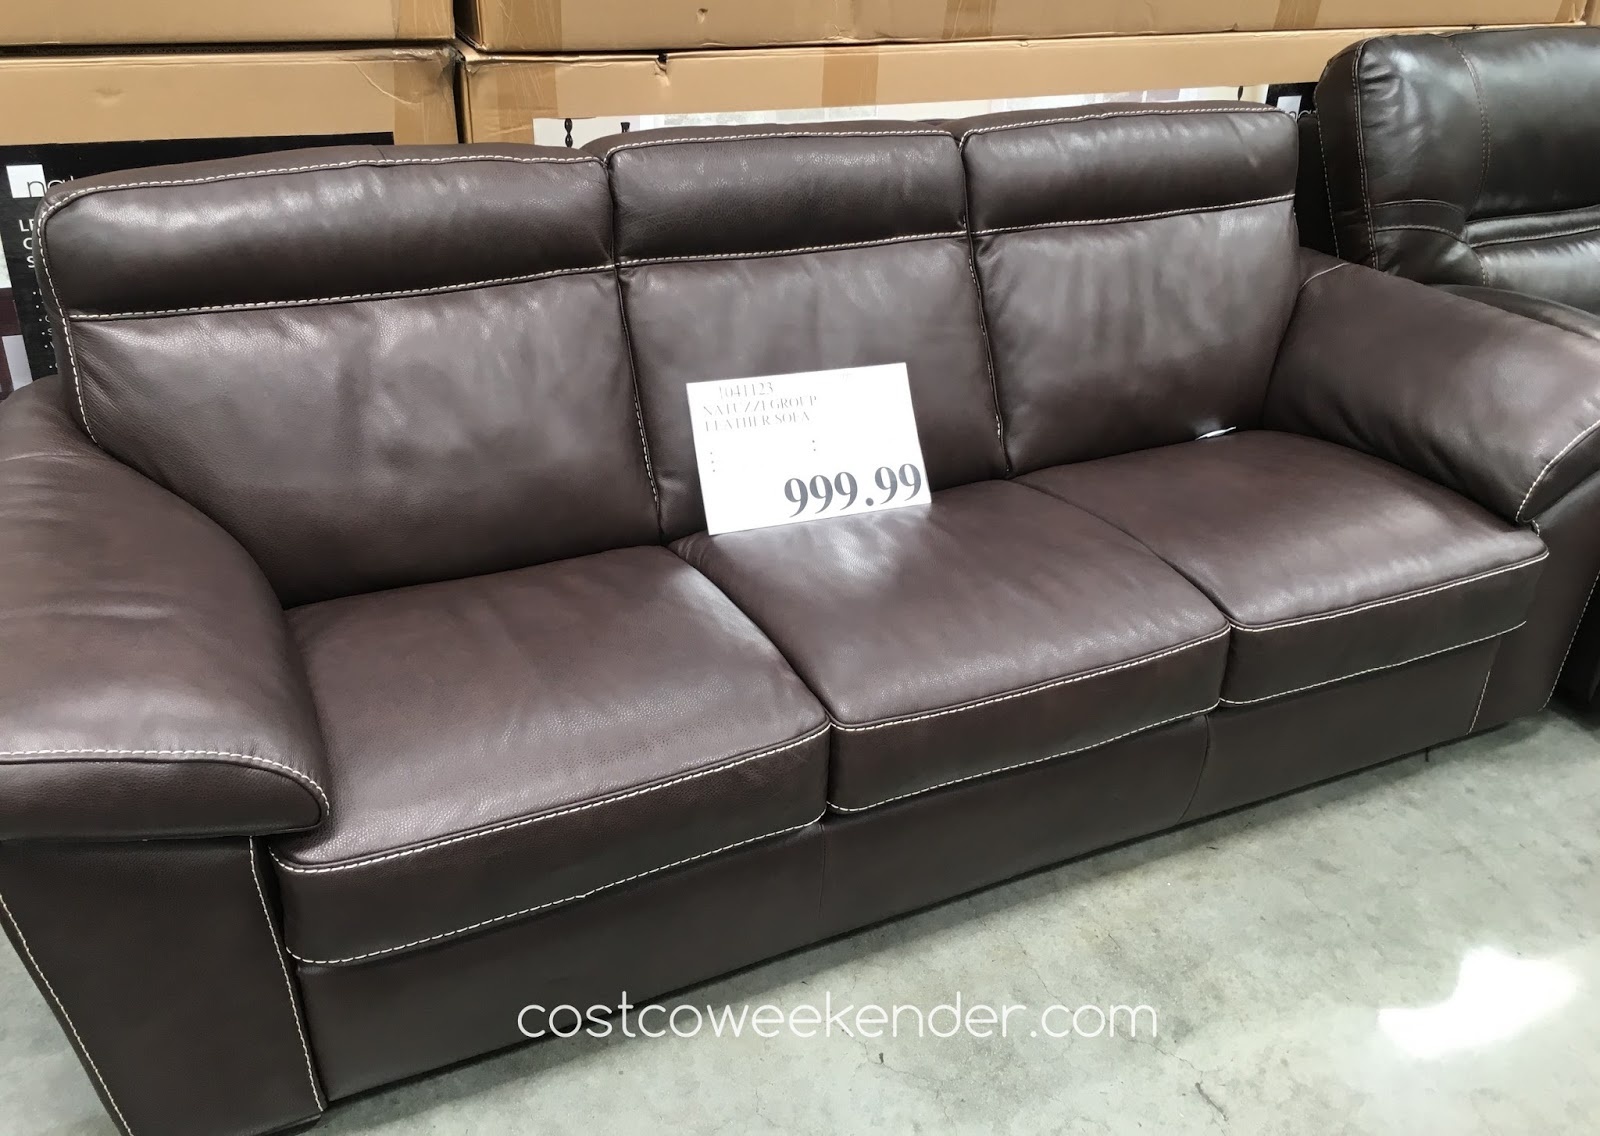 Lounge Around Or Take A Nap On The Natuzzi Group Leather Sofa